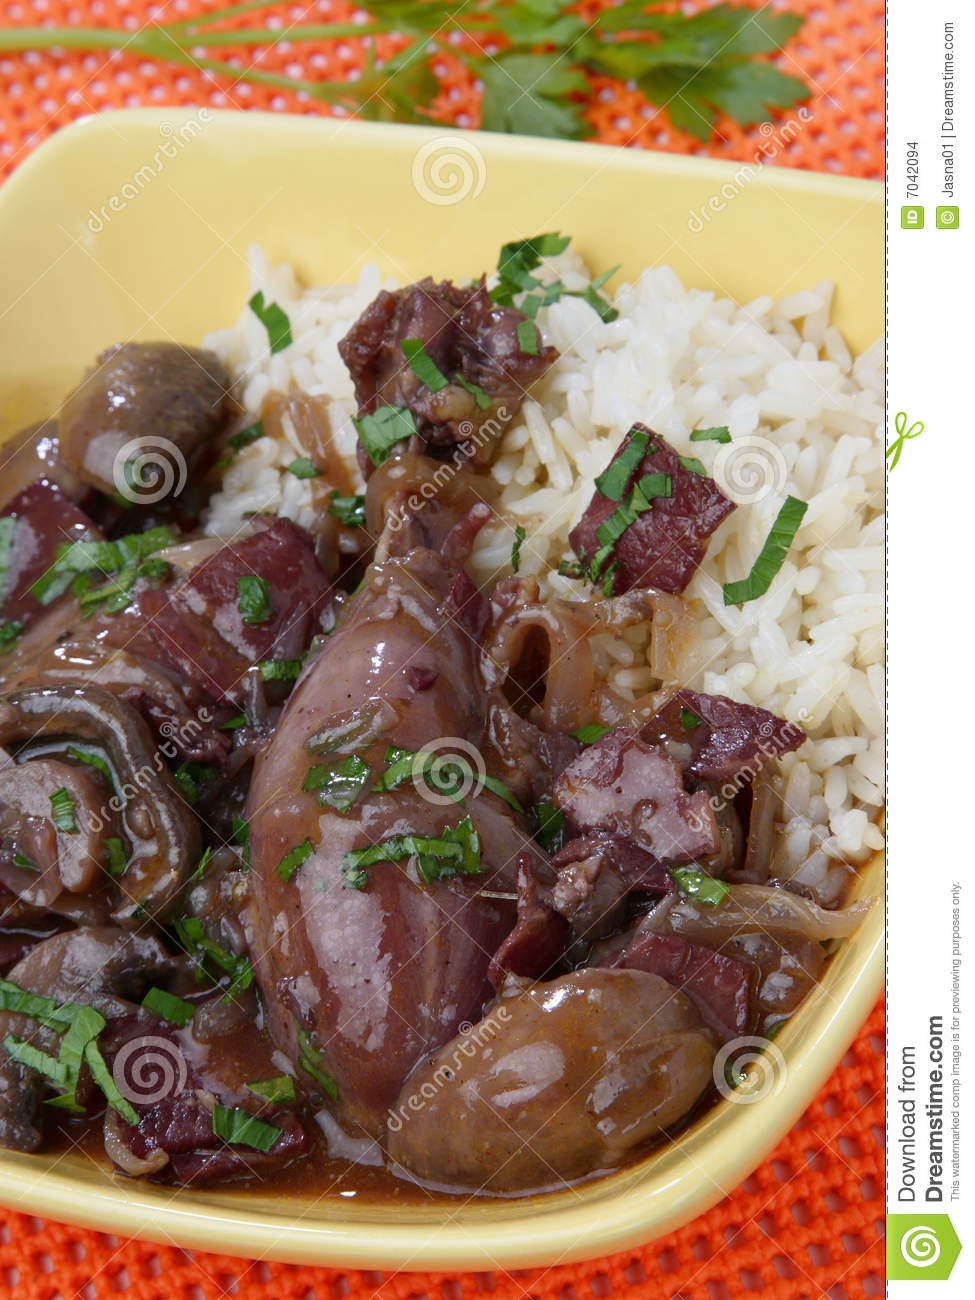 Chicken Meat In Red Wine Sauce Stock Images - Image: 7042094